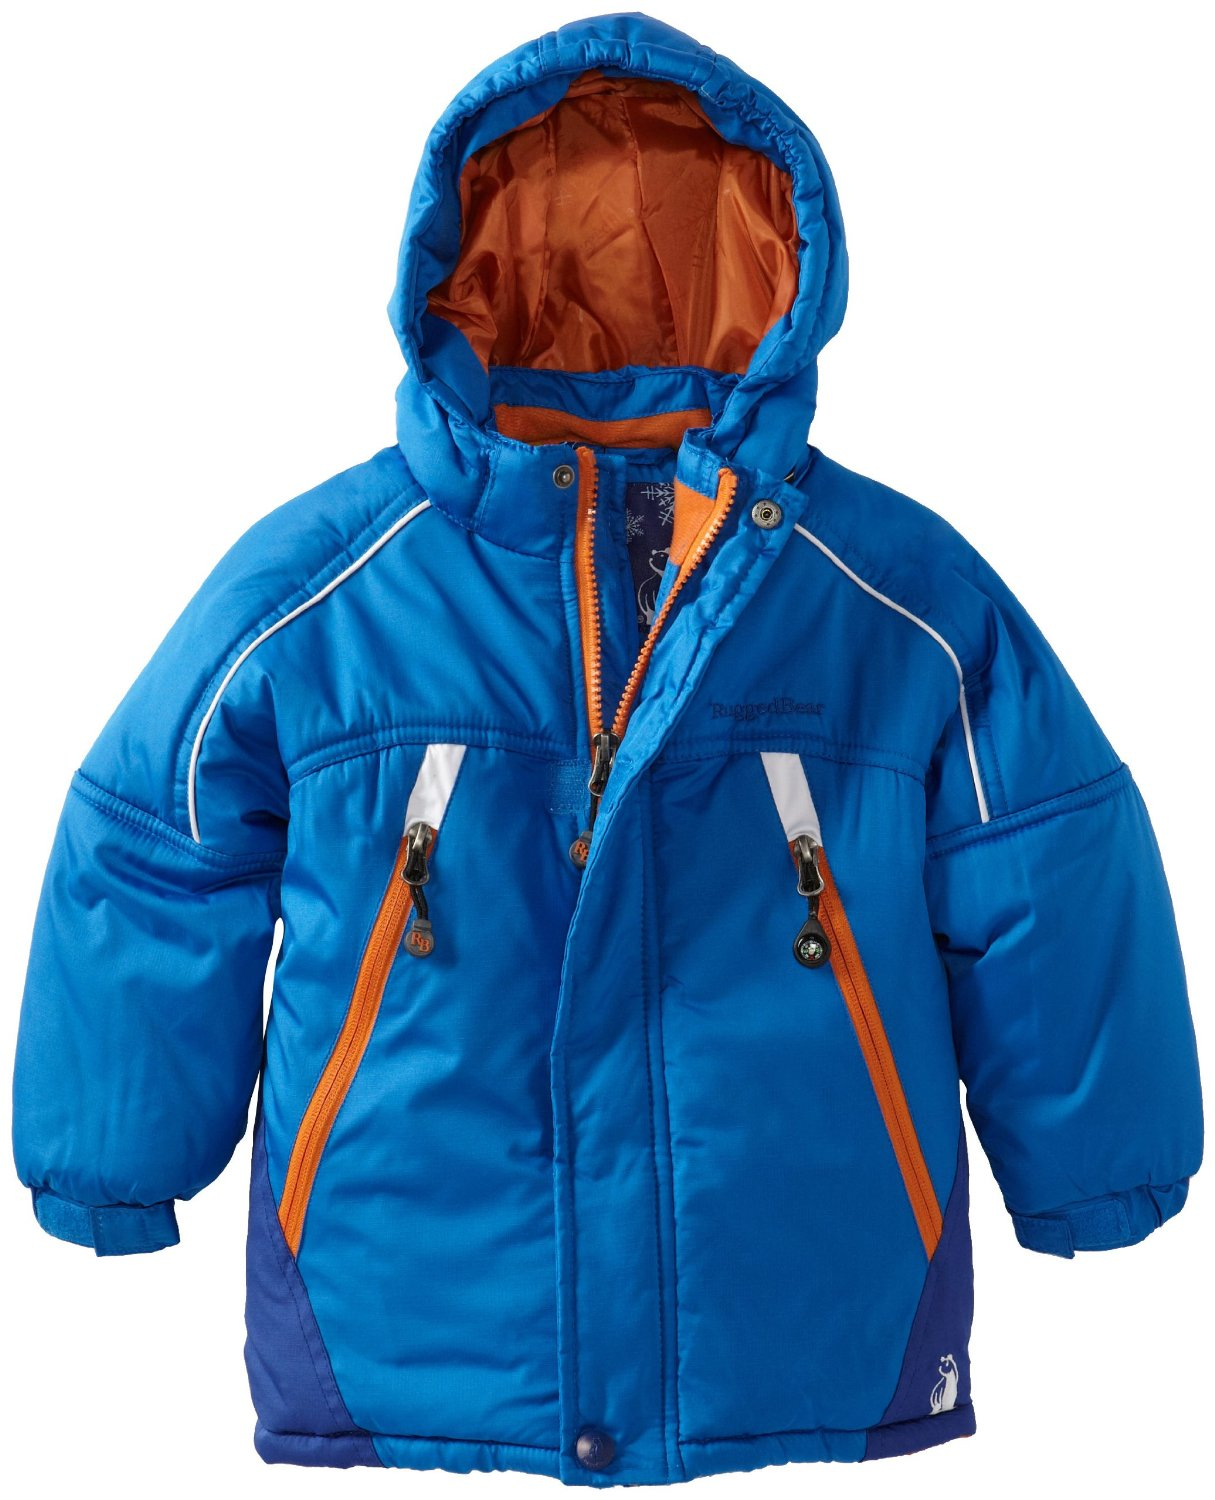 Rugged Bear Toddler Boys Solid Blue Snow Ski Winter Jacket/Coat 2T 3T 4T at Sears.com